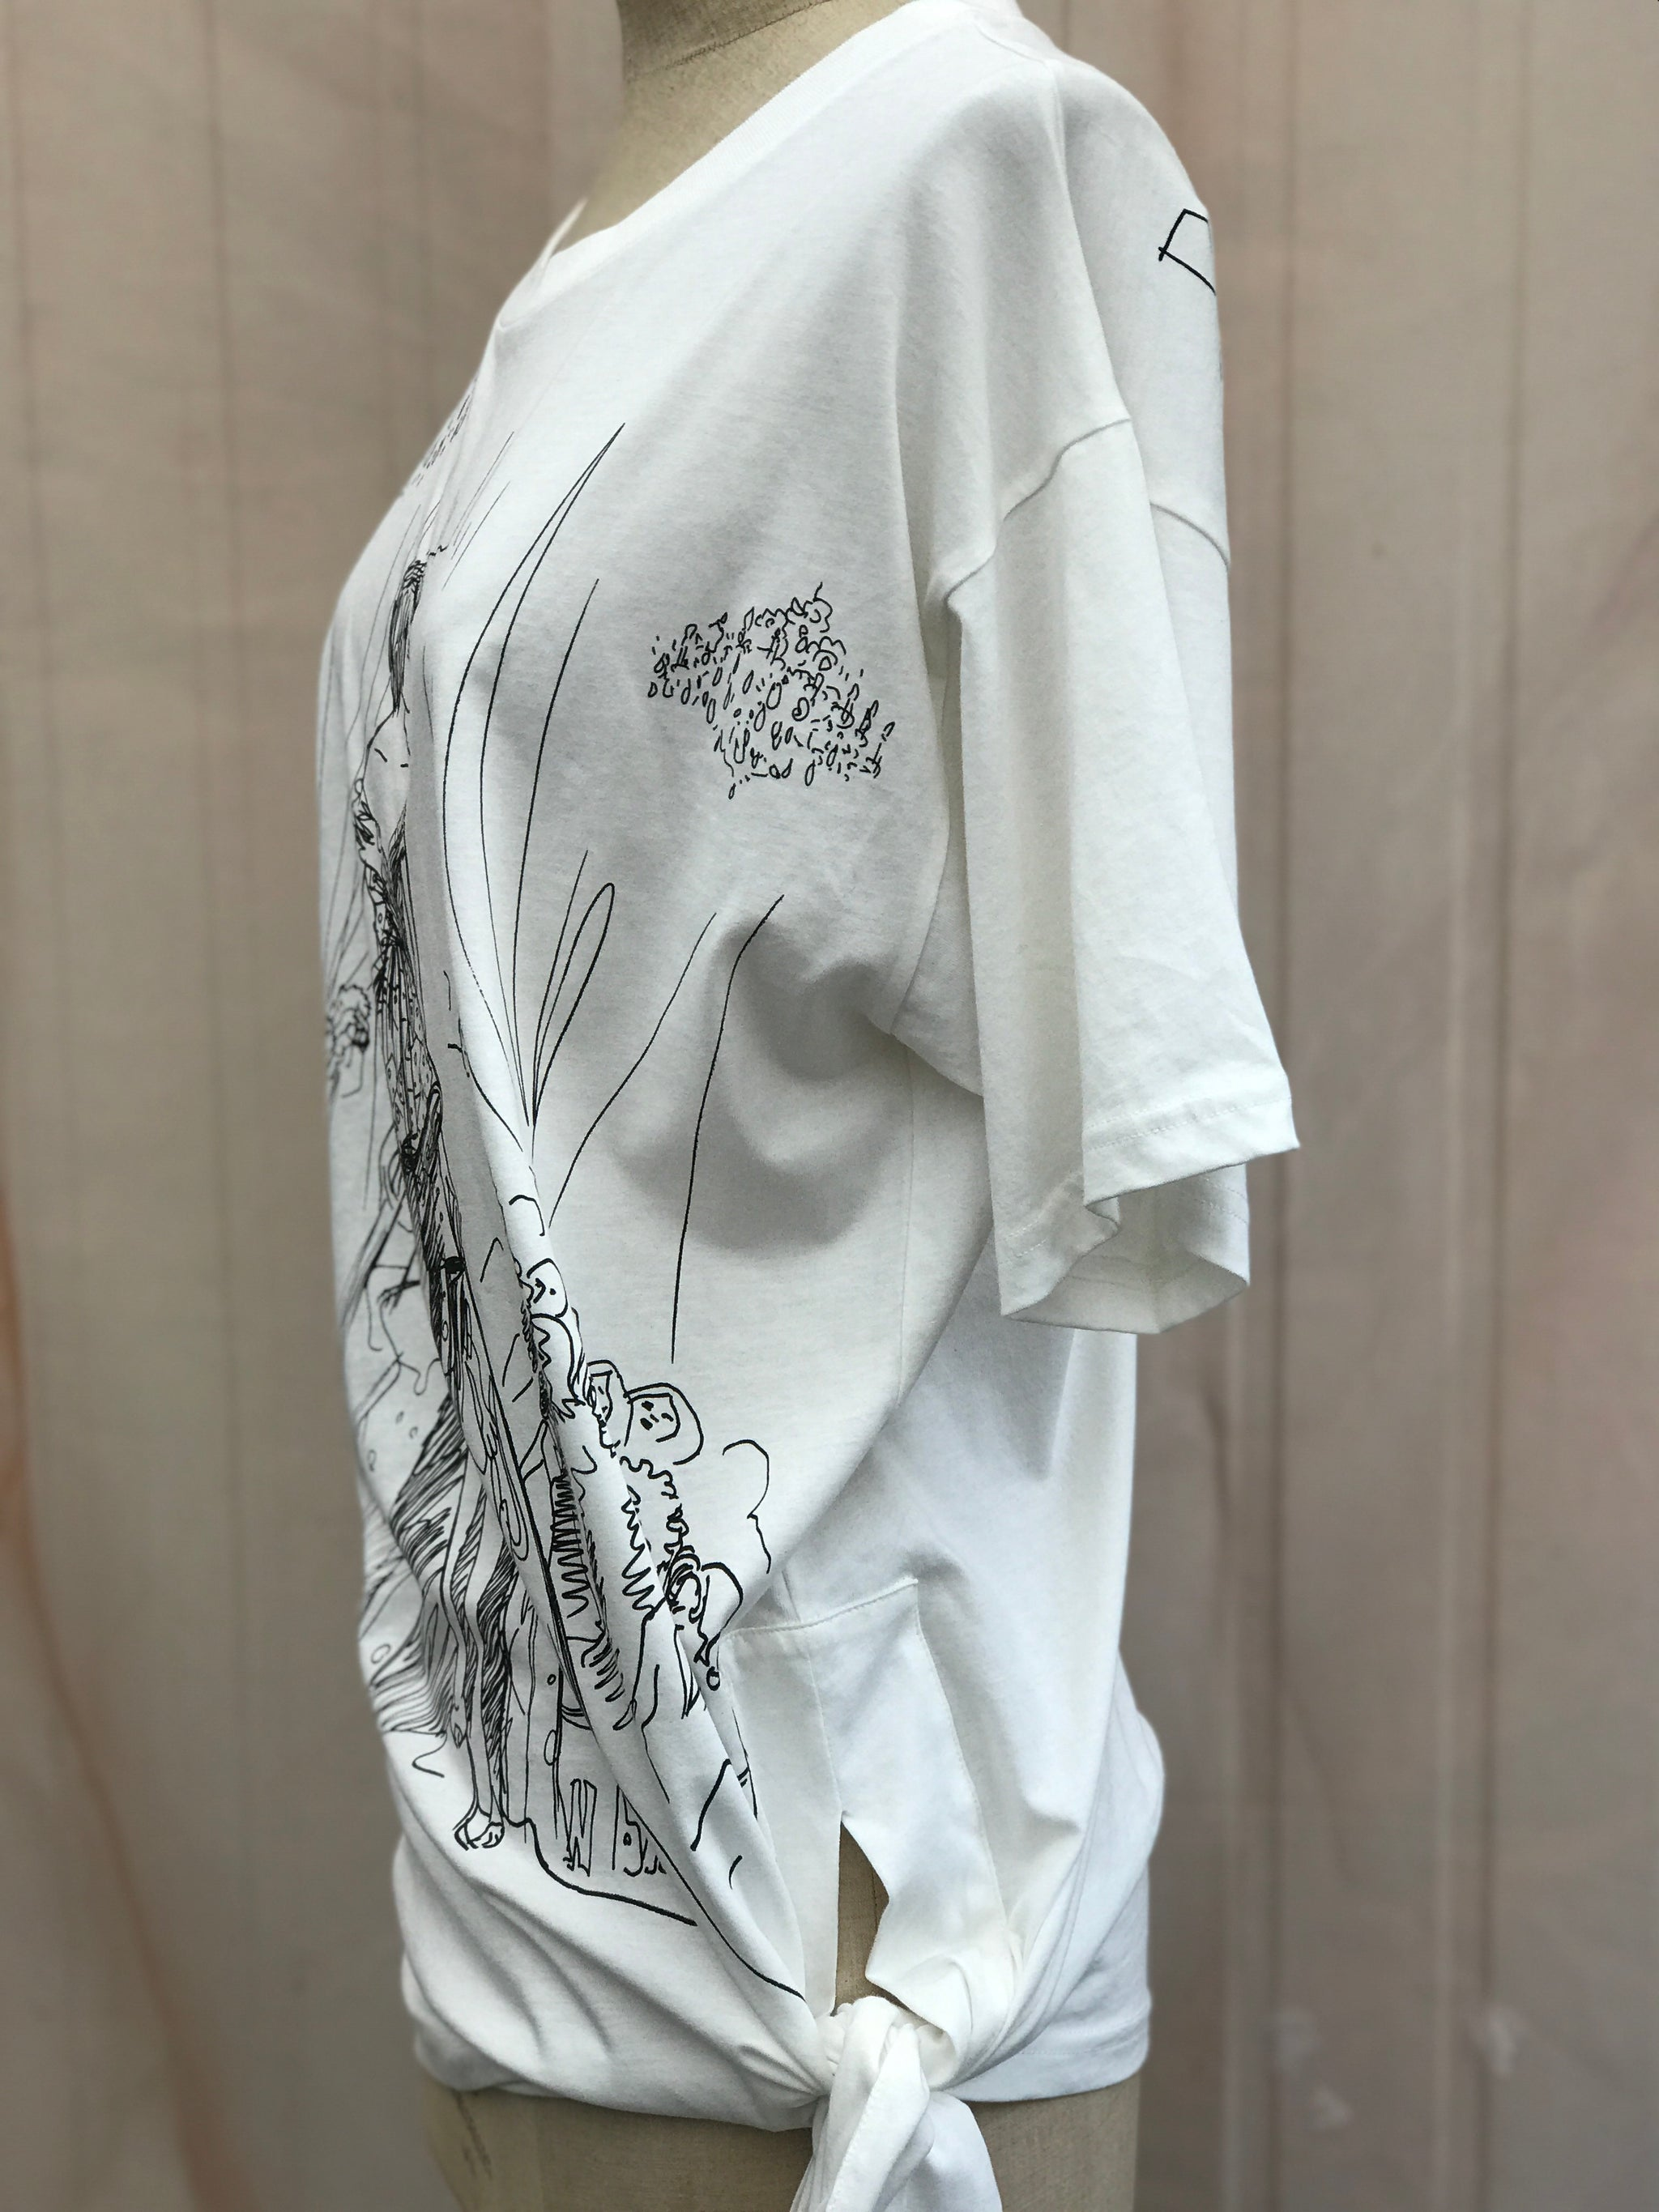 Moschino Couture T-shirt S - Iconics Preloved Luxury